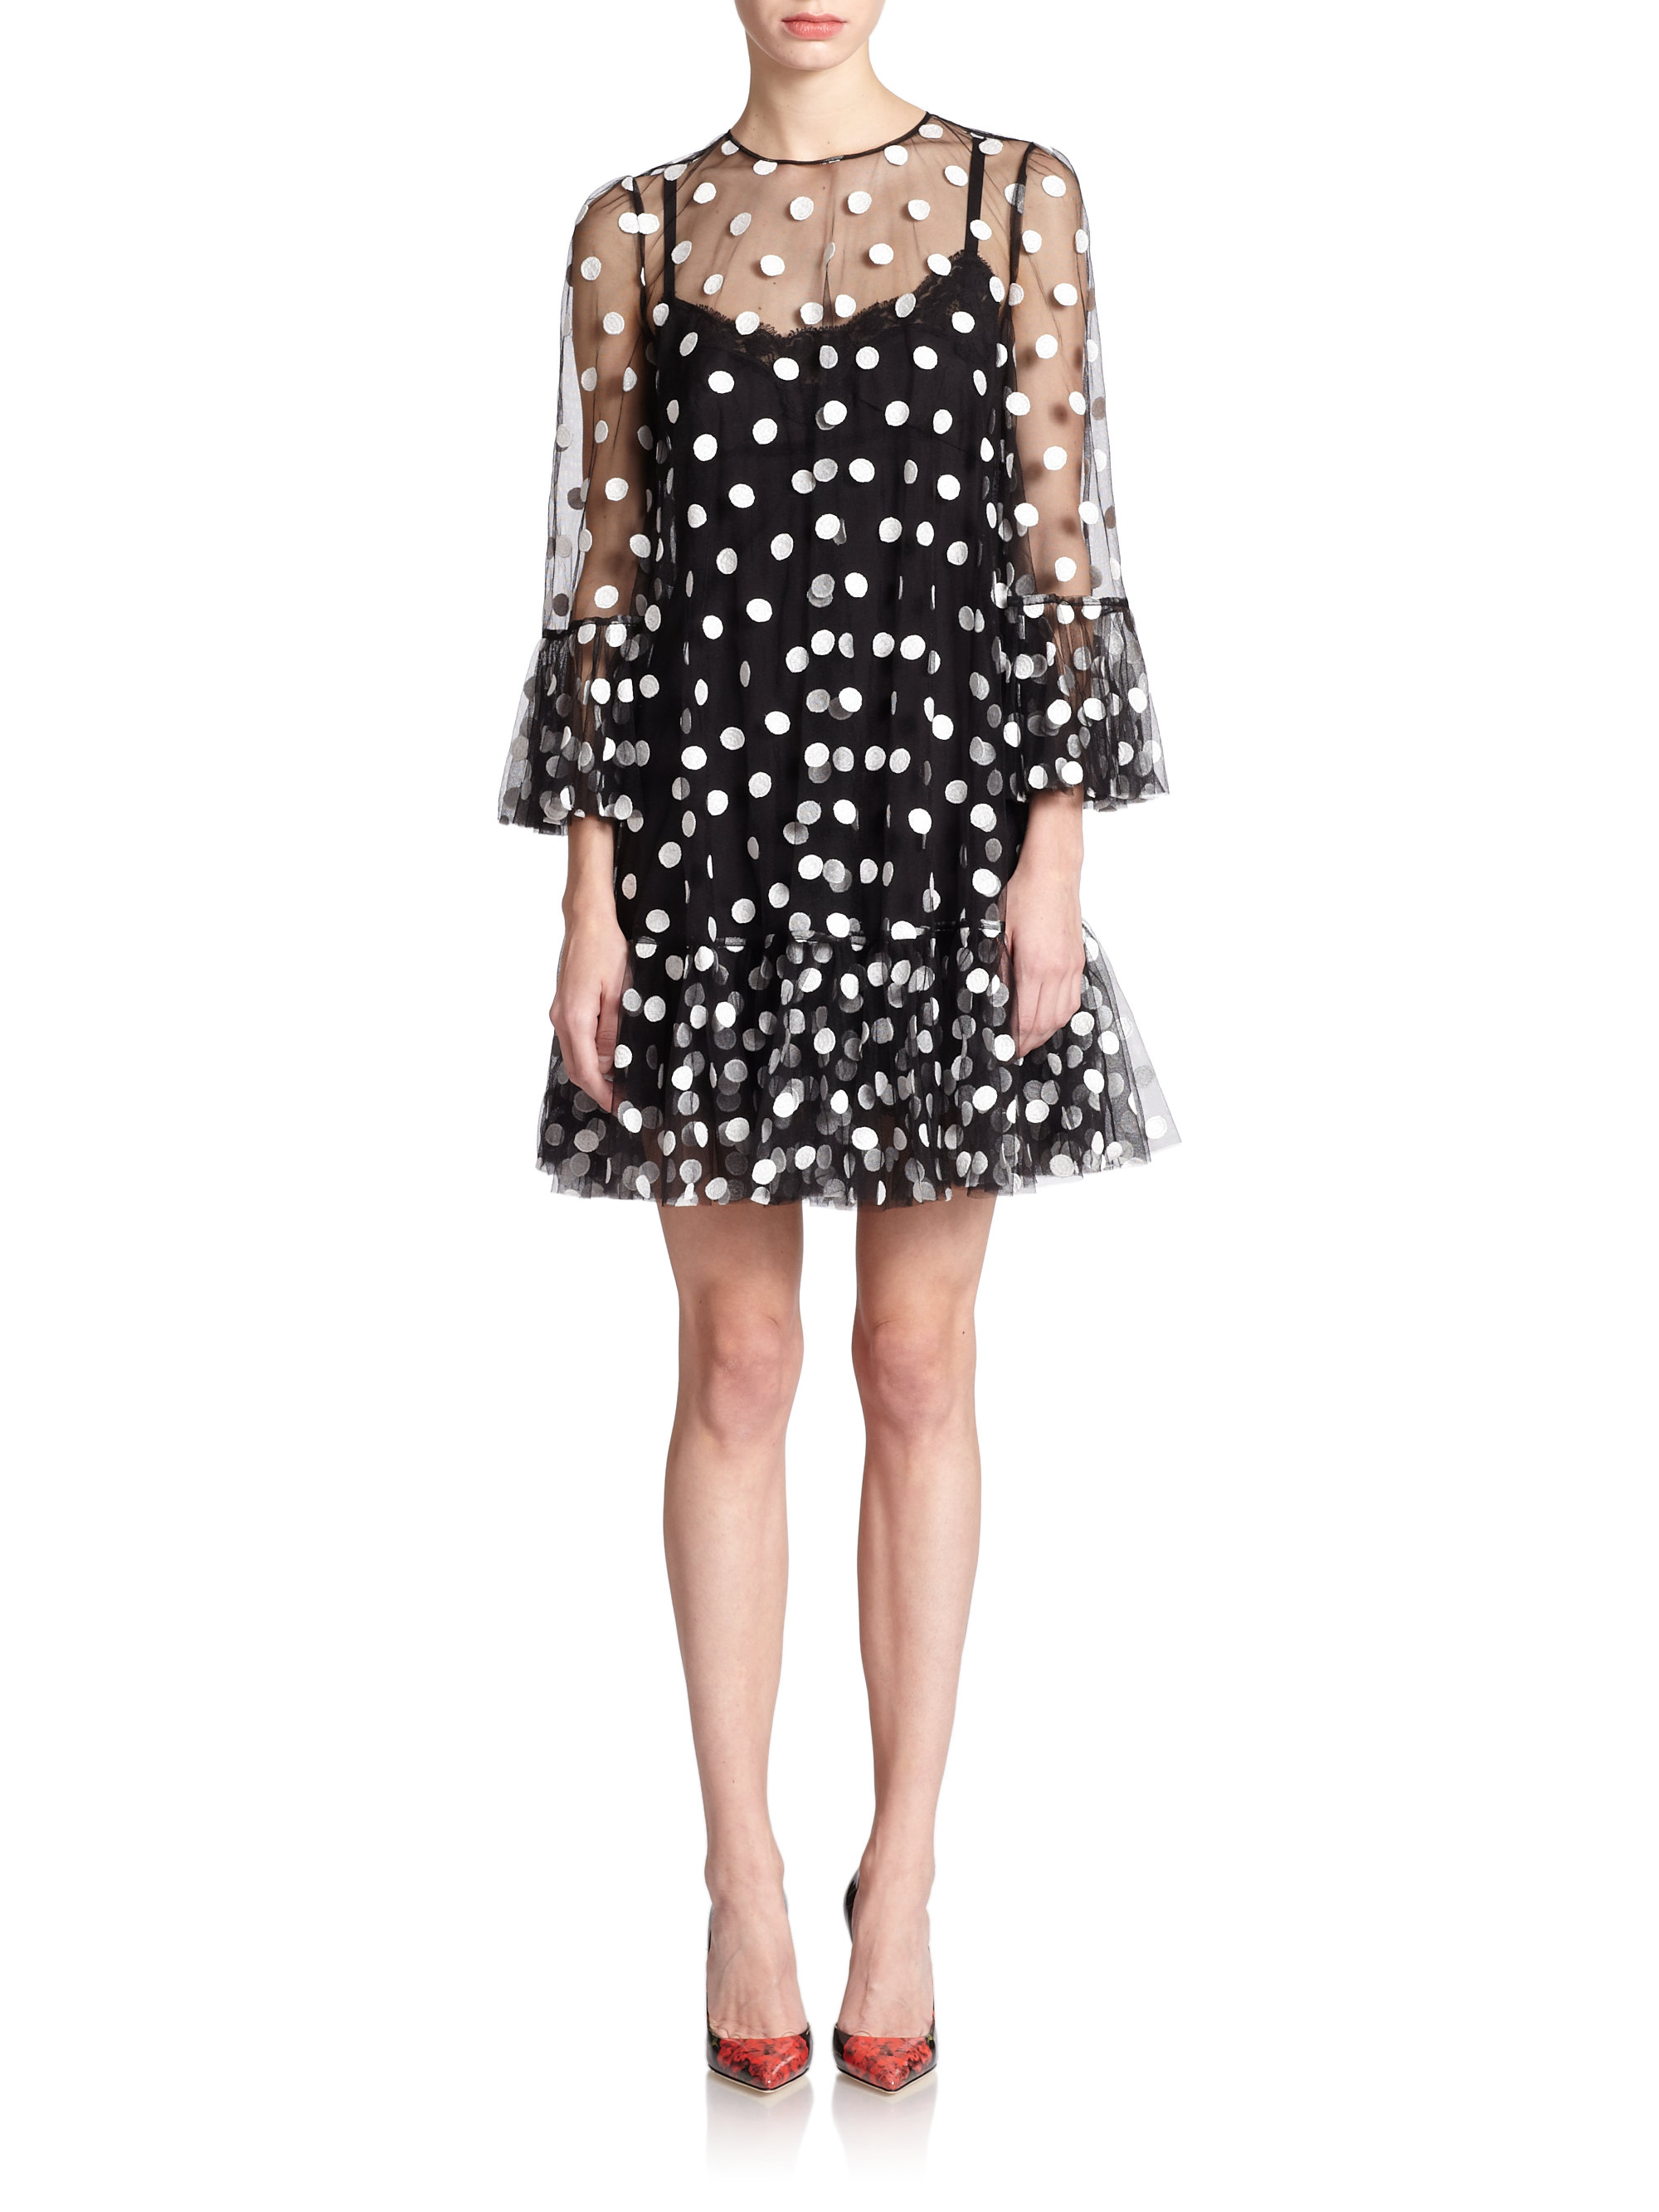 Lyst Dolce & Gabbana Tulle Polka Dot Babydoll Dress in Black